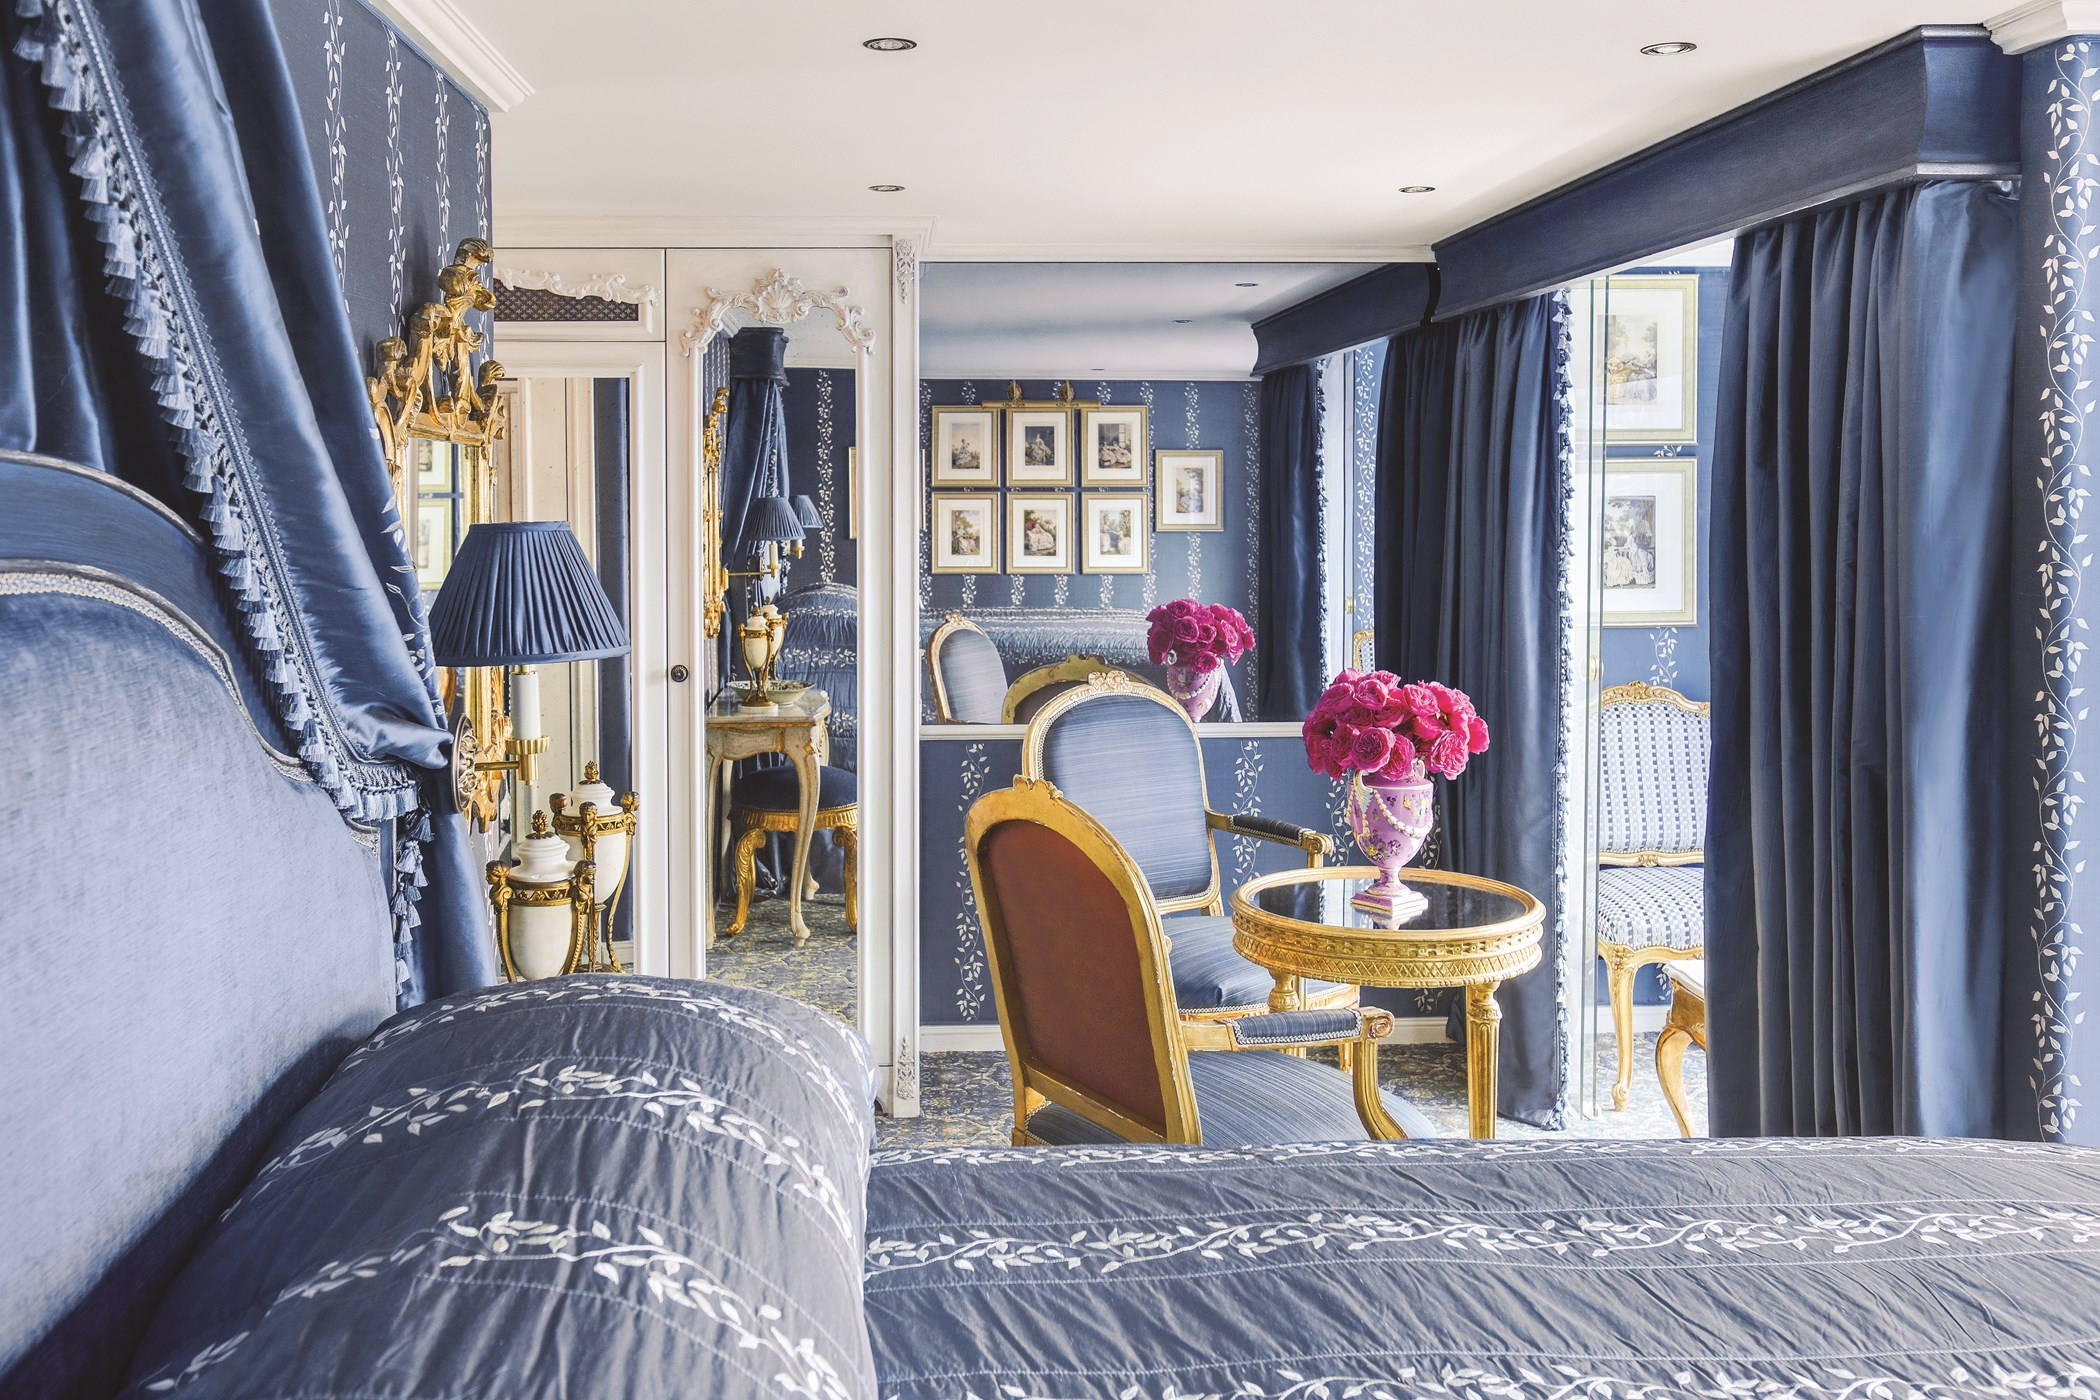 UNIWORLD Boutique River Cruises SS Maria Theresa Accommodation Suite 407 4.jpg